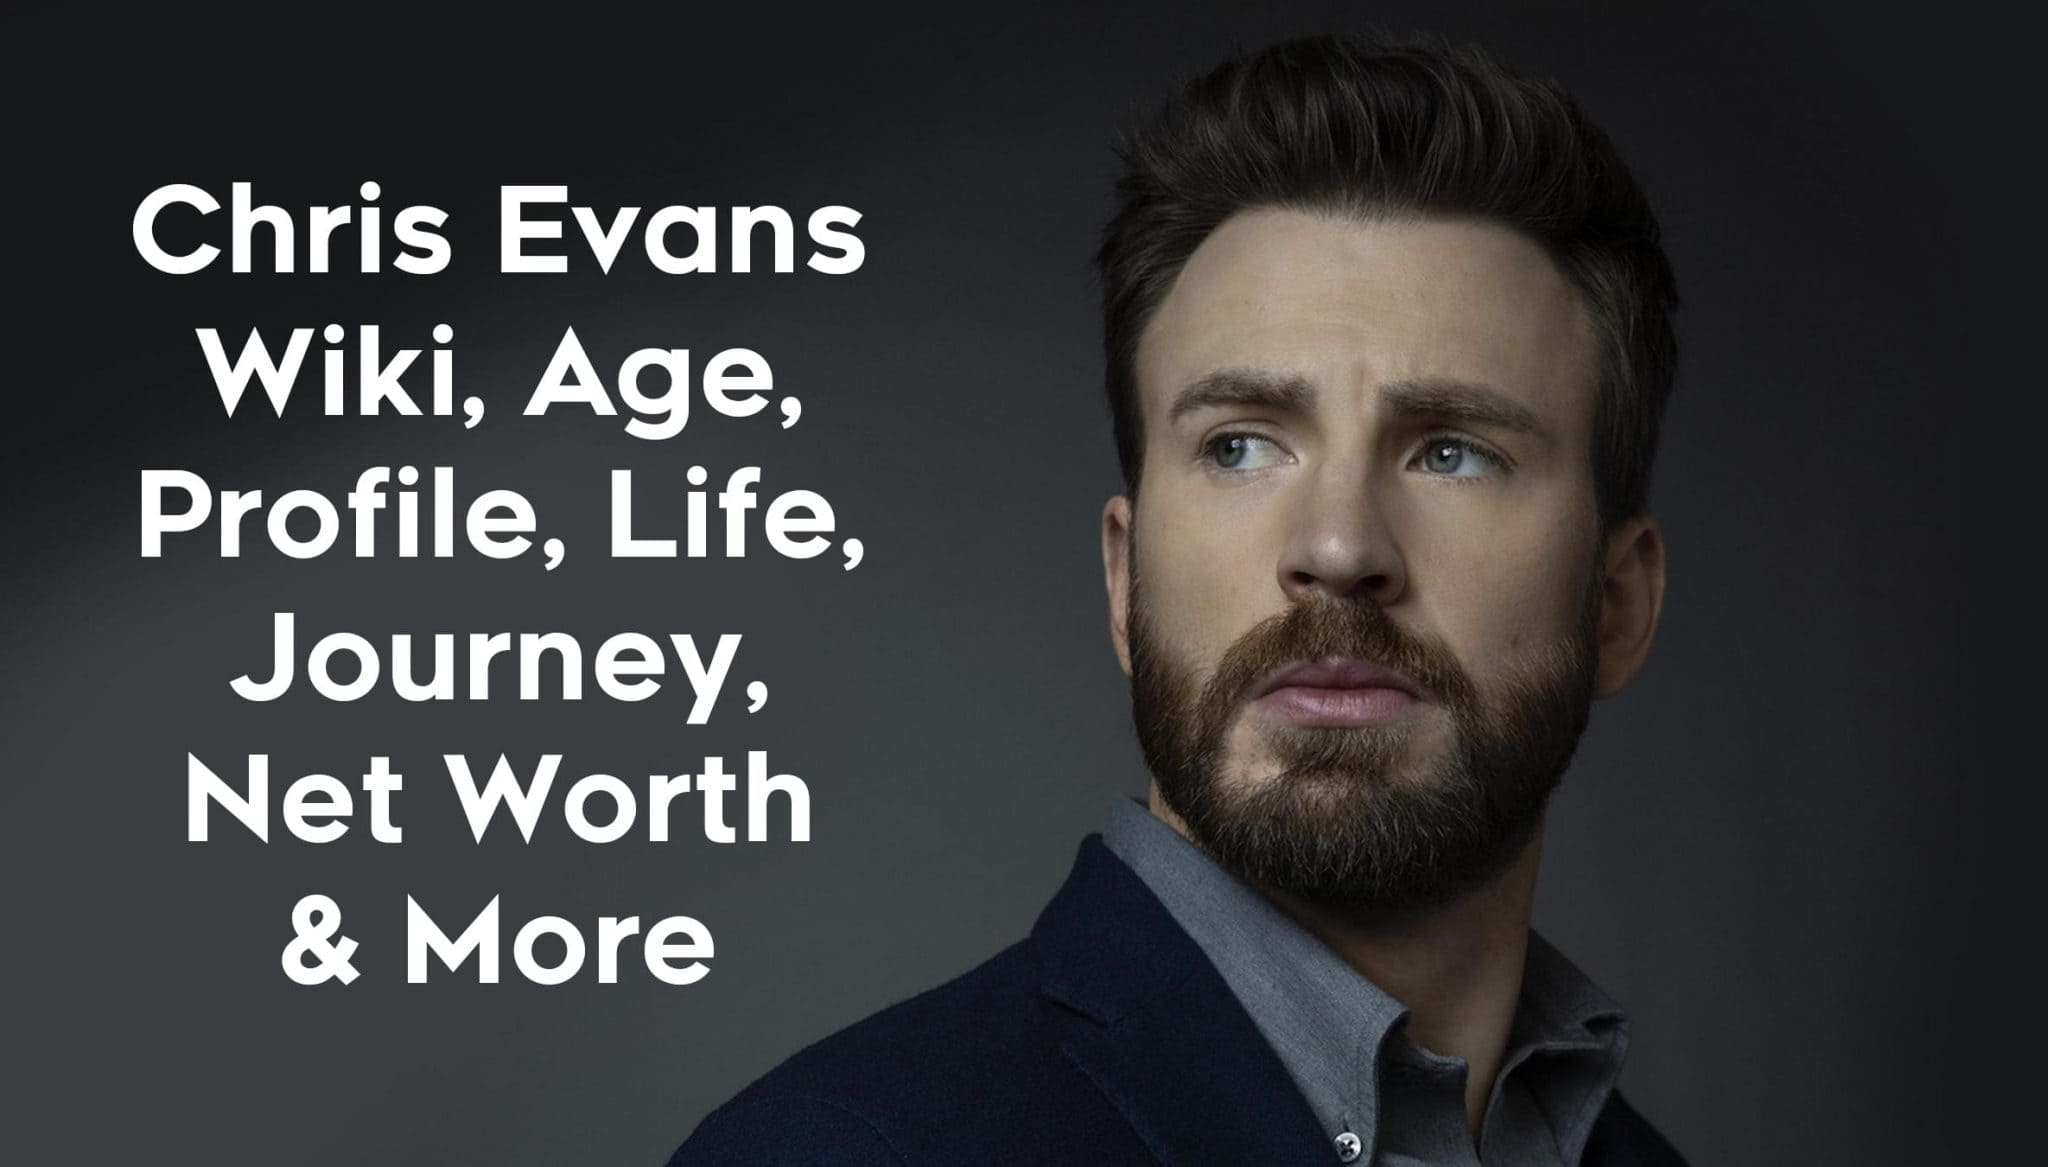 Chris Evans (Actor) Wiki, Age, Family, Net Worth, Journey & More 1